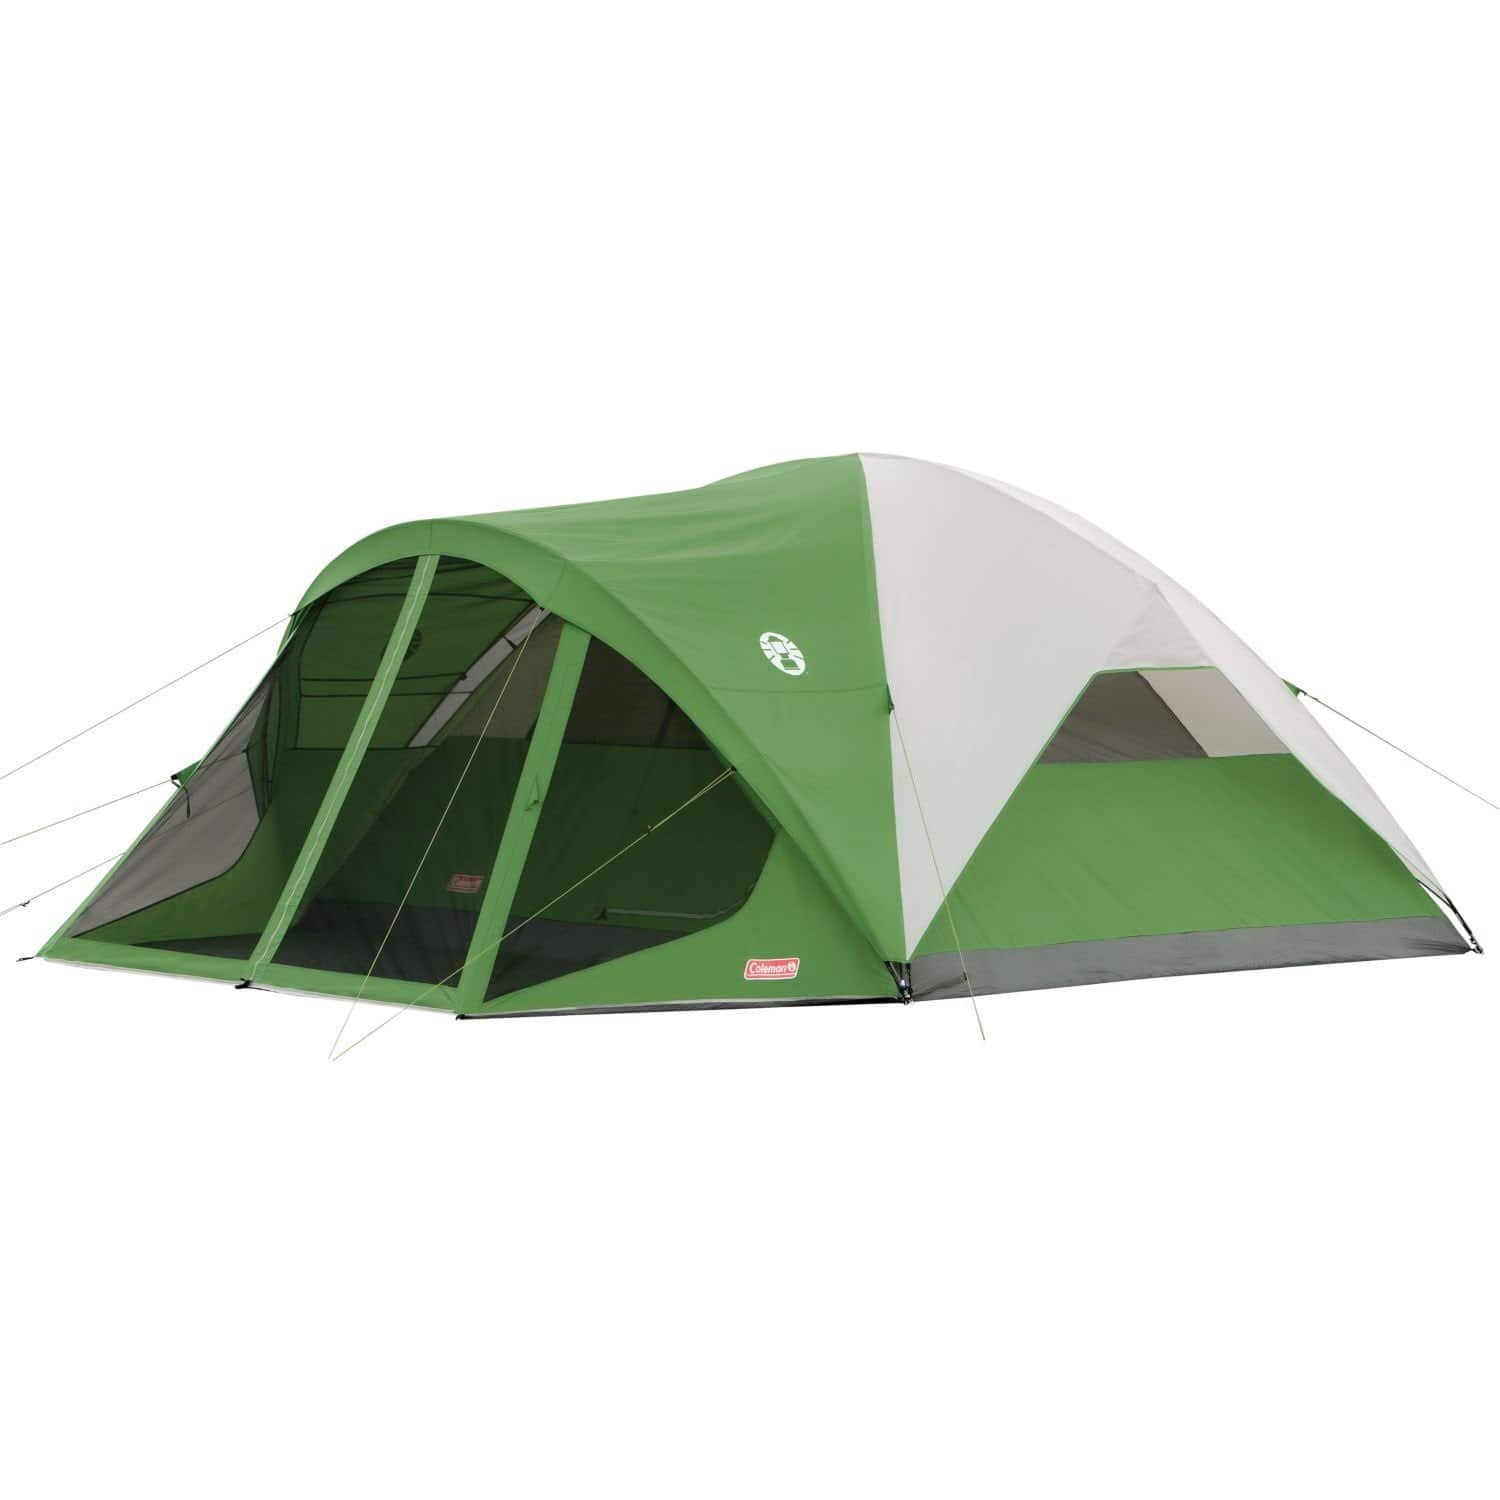 Coleman Dome Evanston Camping Tent with Screen Room (6 Person) $87.99 | (8) $96.17 - Amazon